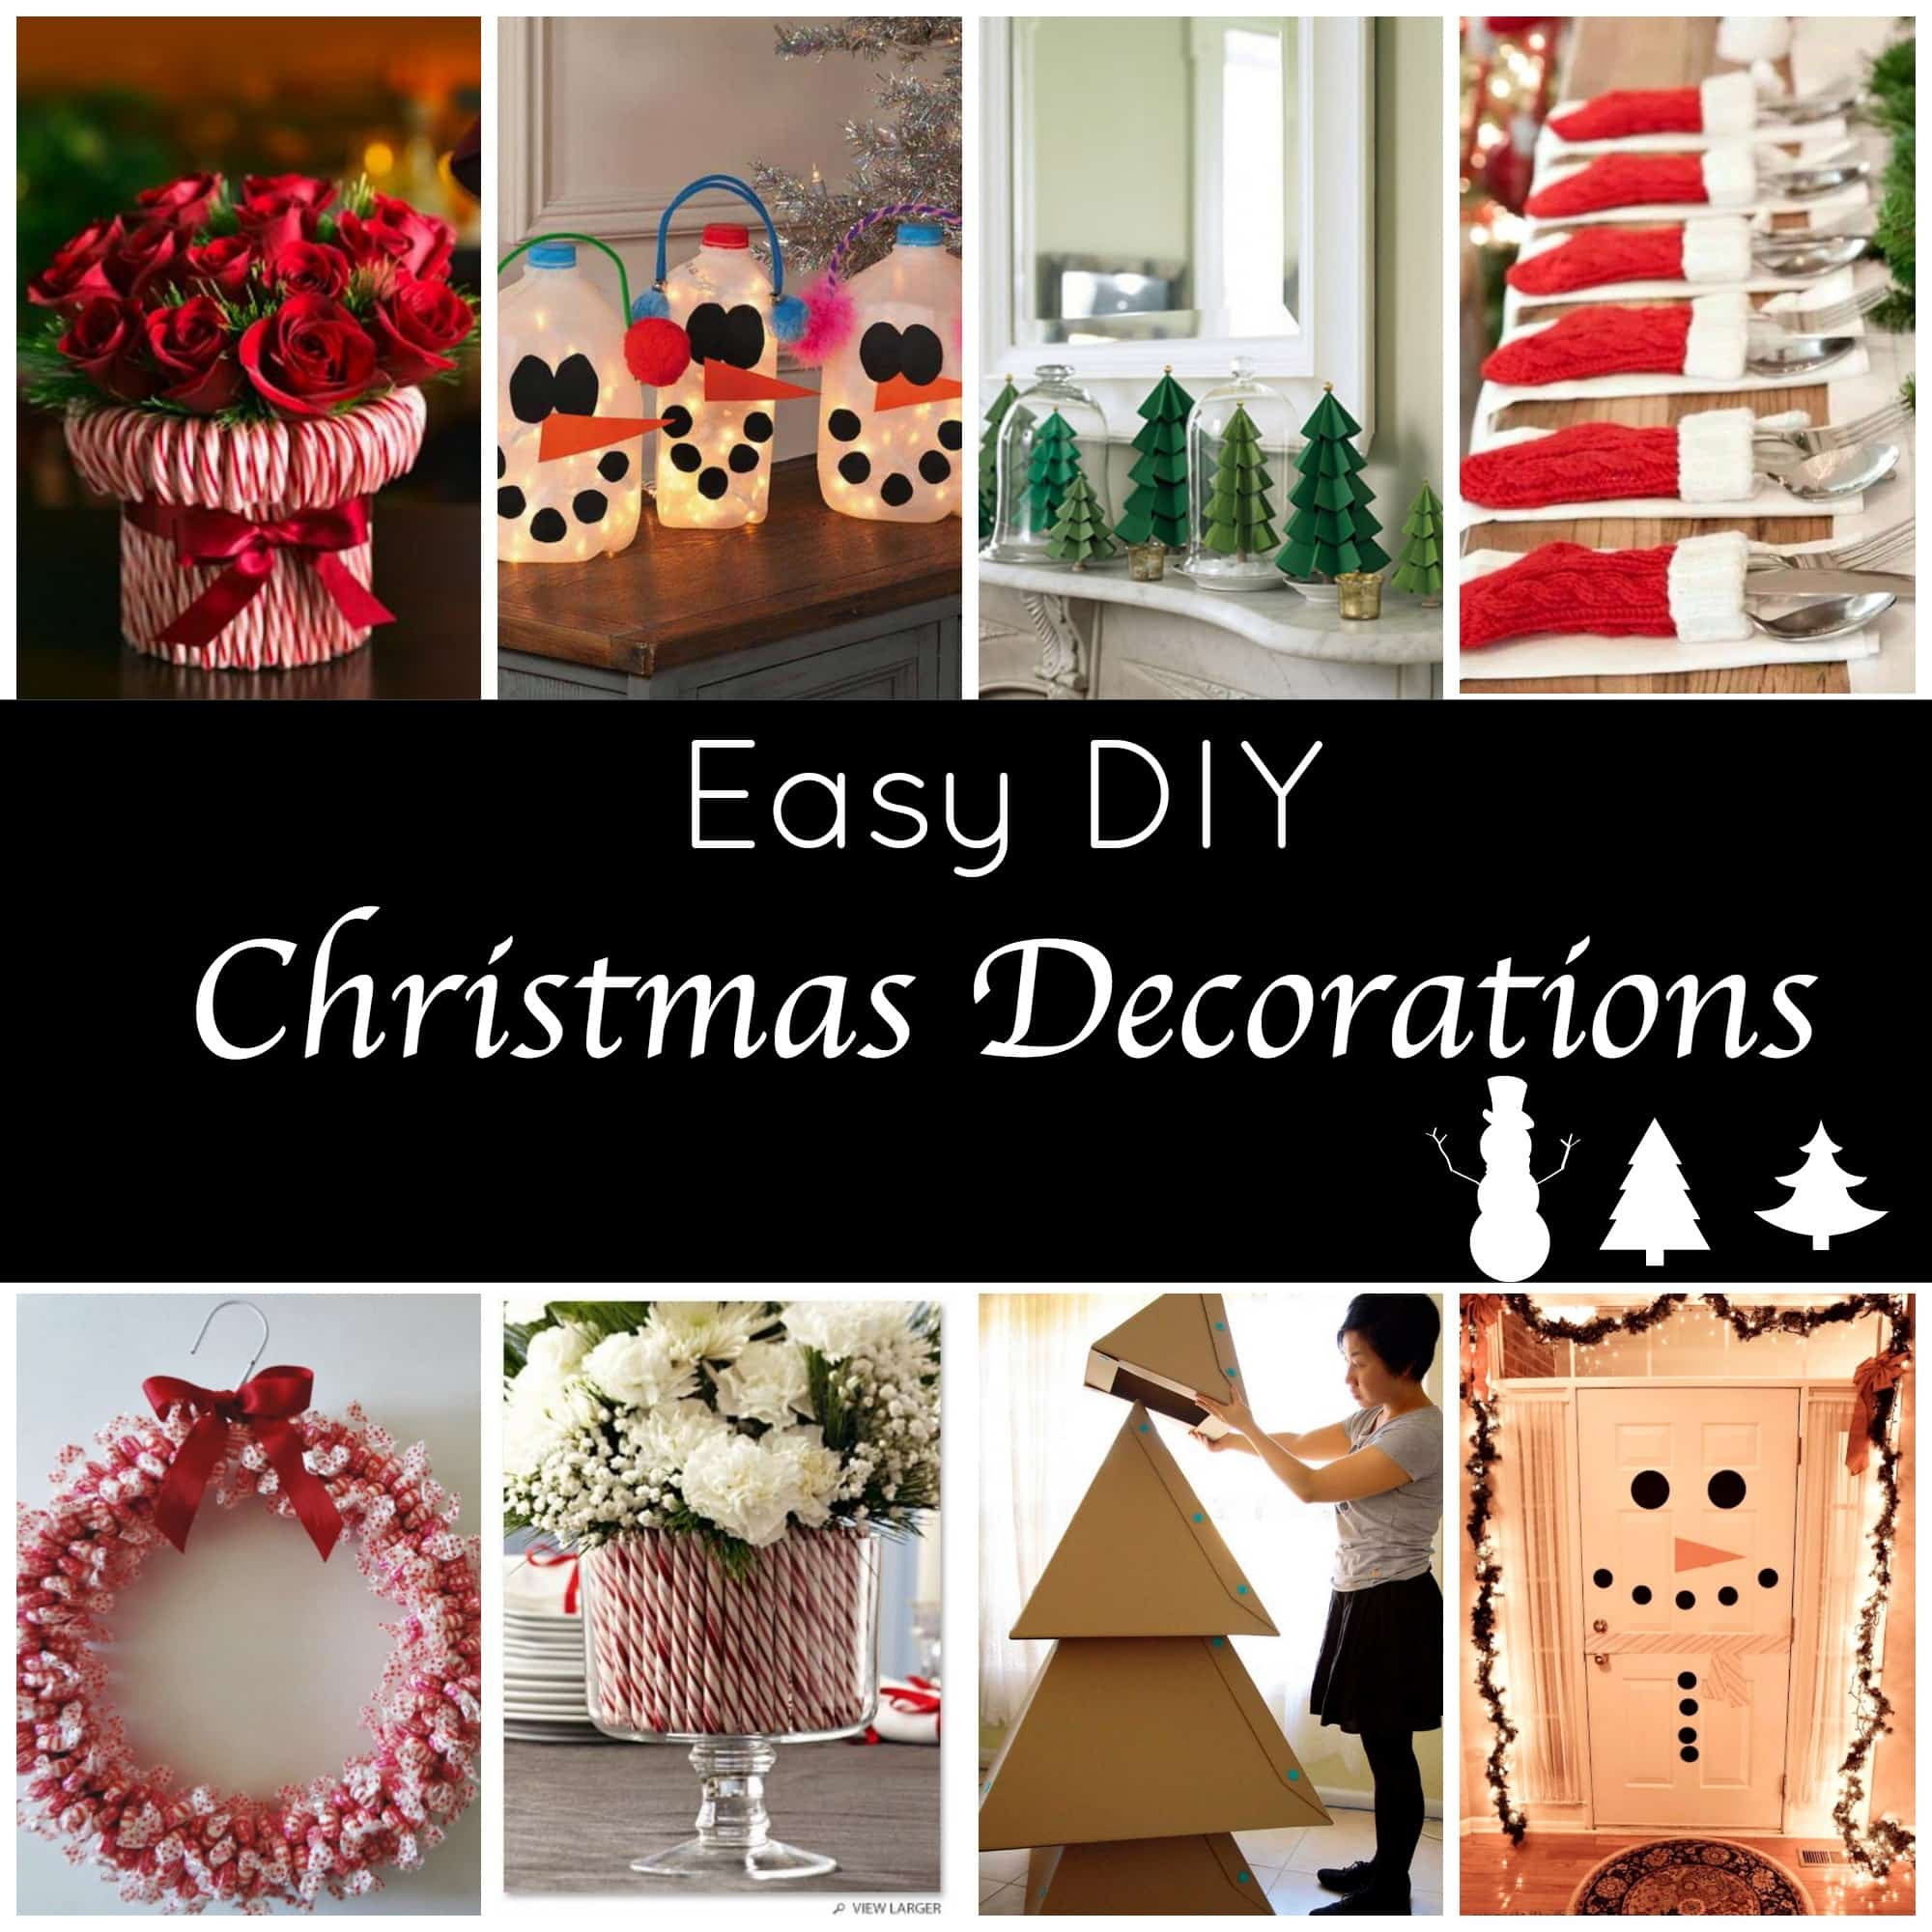 Christmas Decoration Ideas DIY  Cute and Easy DIY Holiday Decorations for a Festive Home